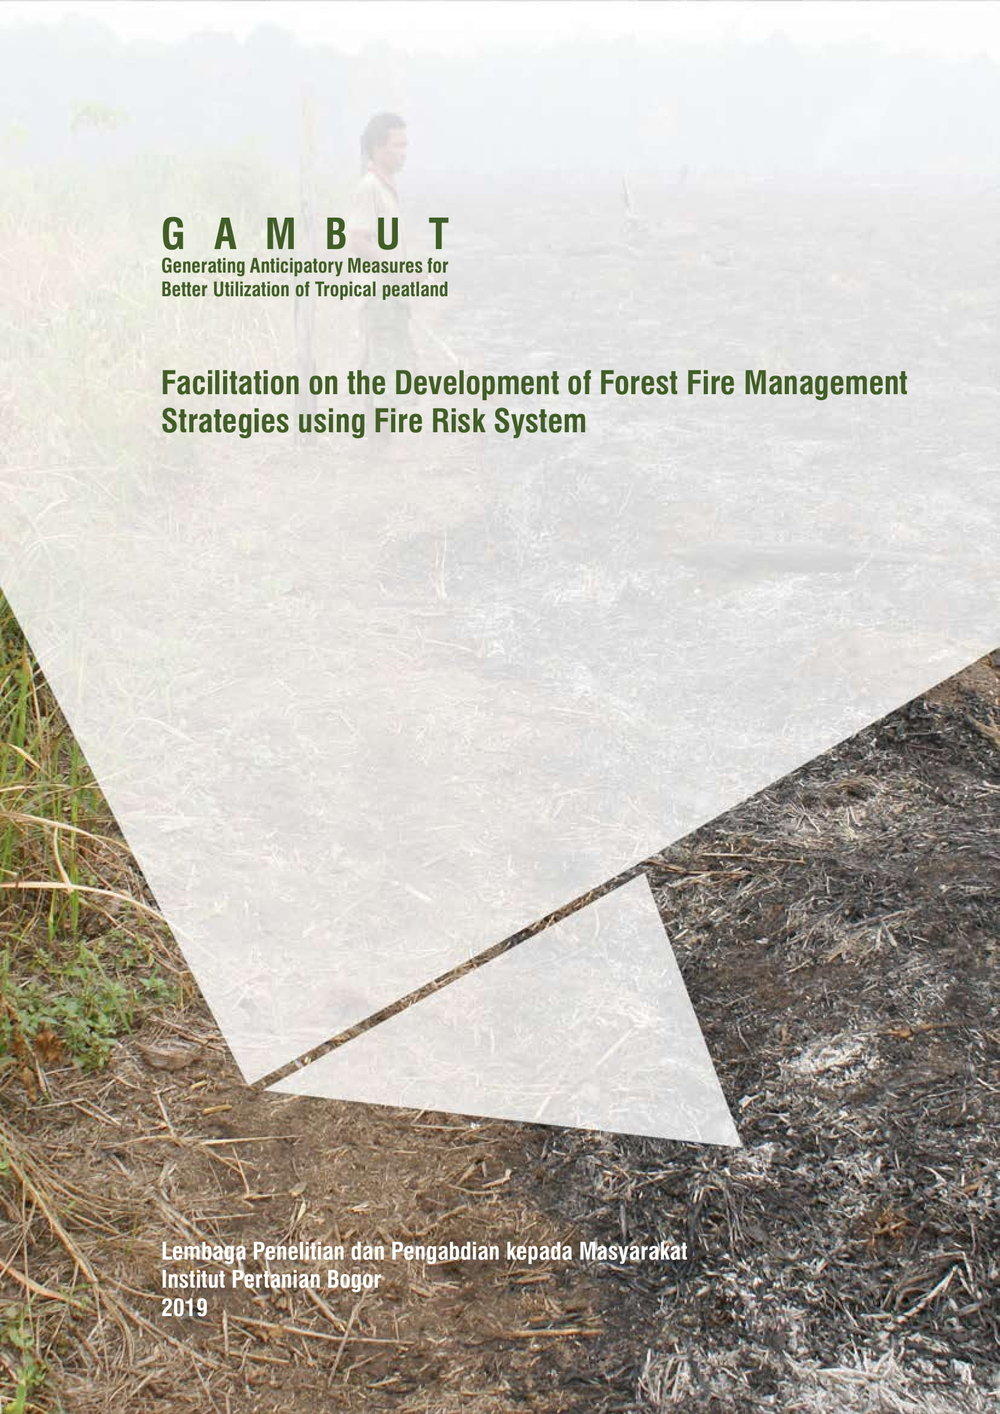 Facilitation on the Development of Forest Fire Management Strategies 1-1.jpg